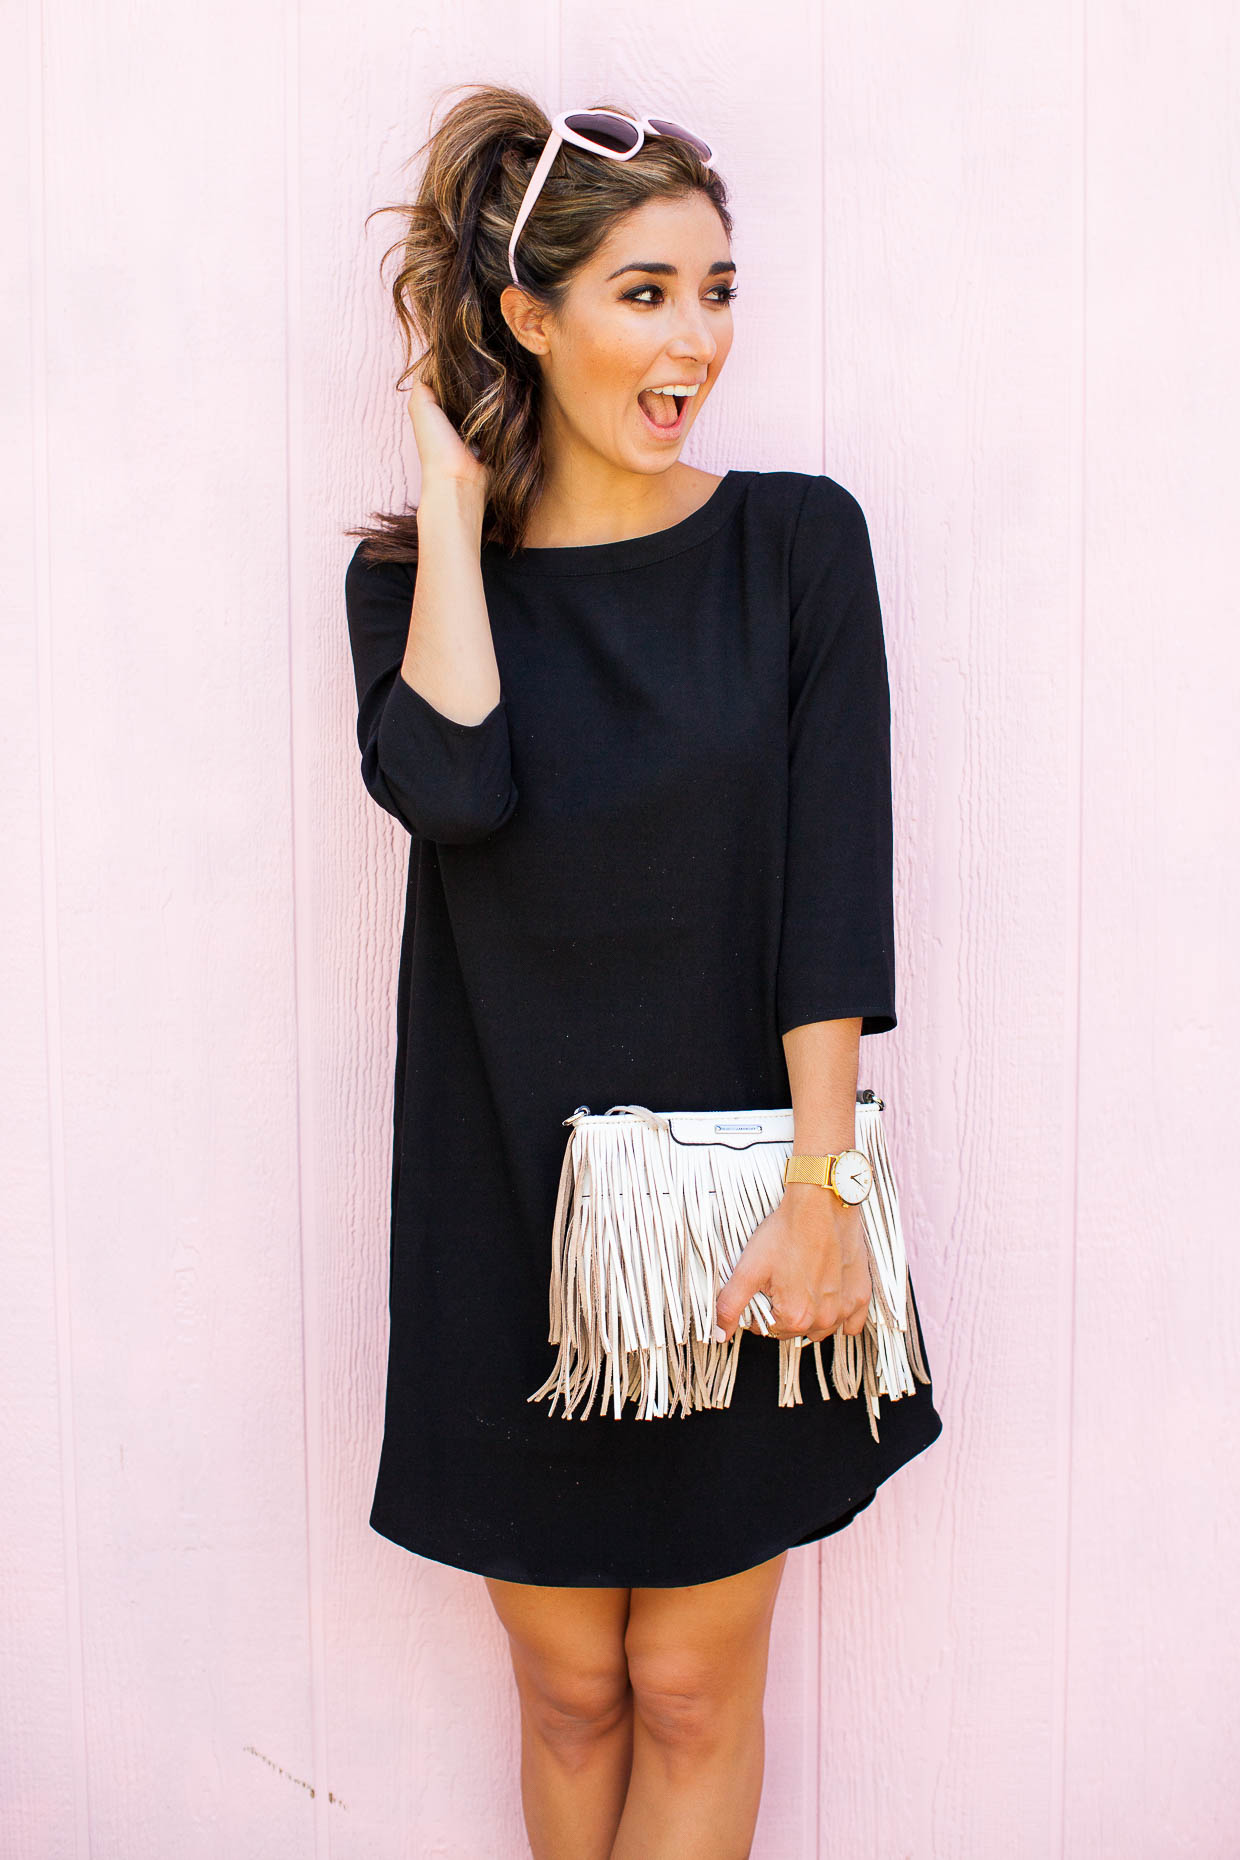 The Little Black Dress - The Darling Detail